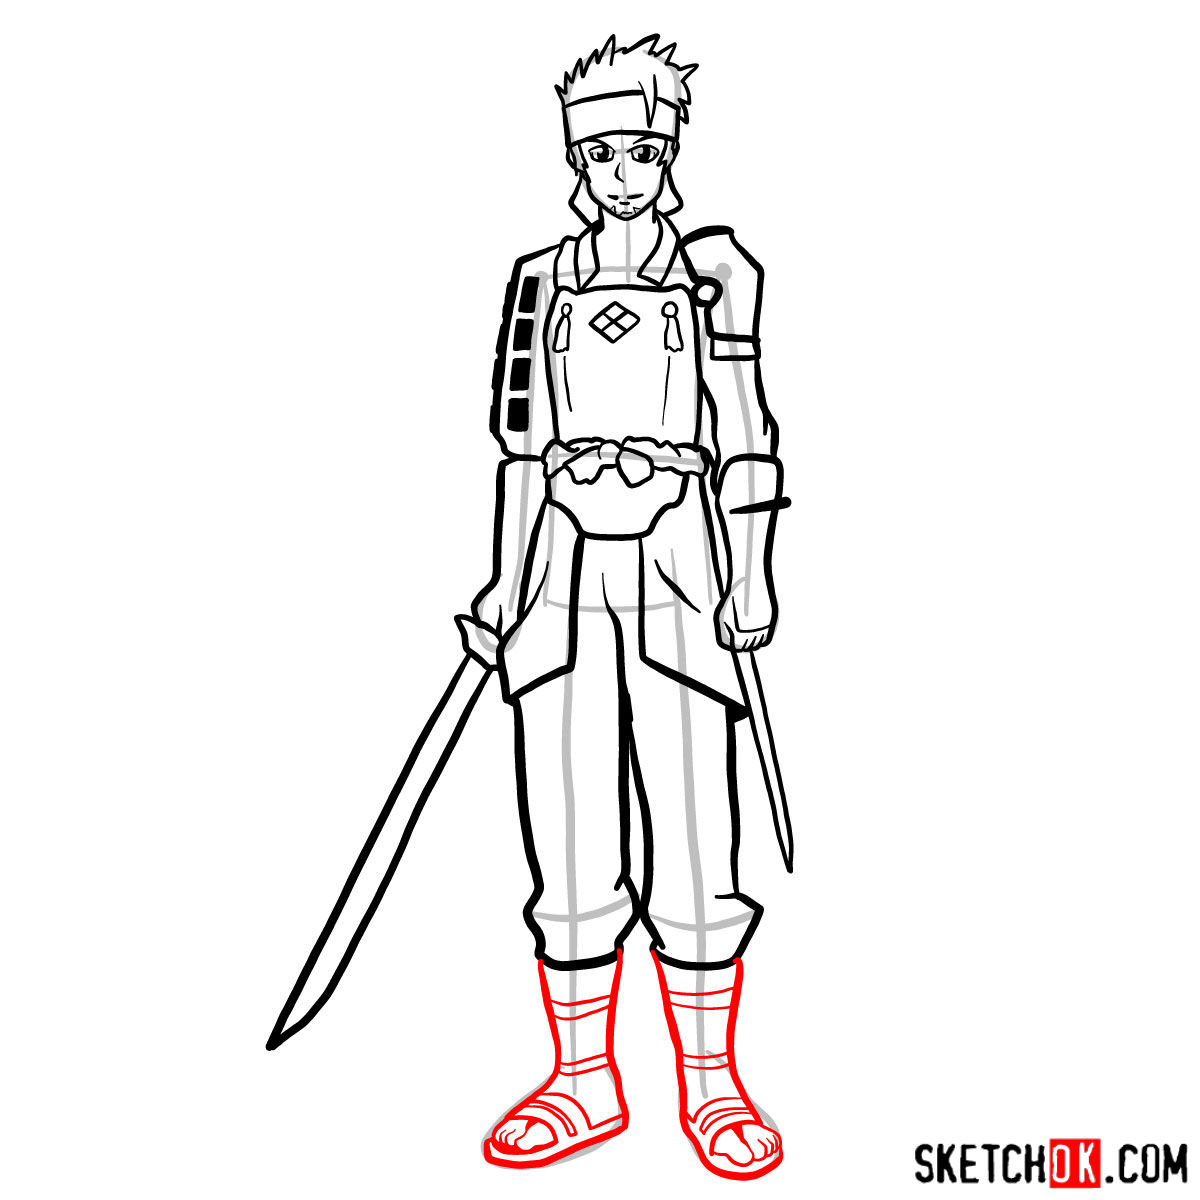 How to draw Klein from Sword Art Online - step 14